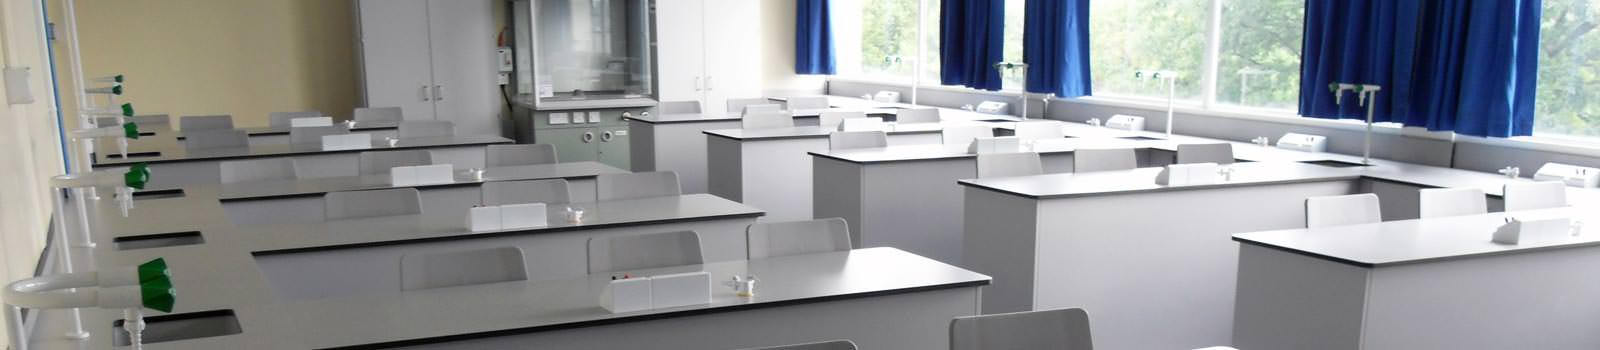 school furniture product ranges